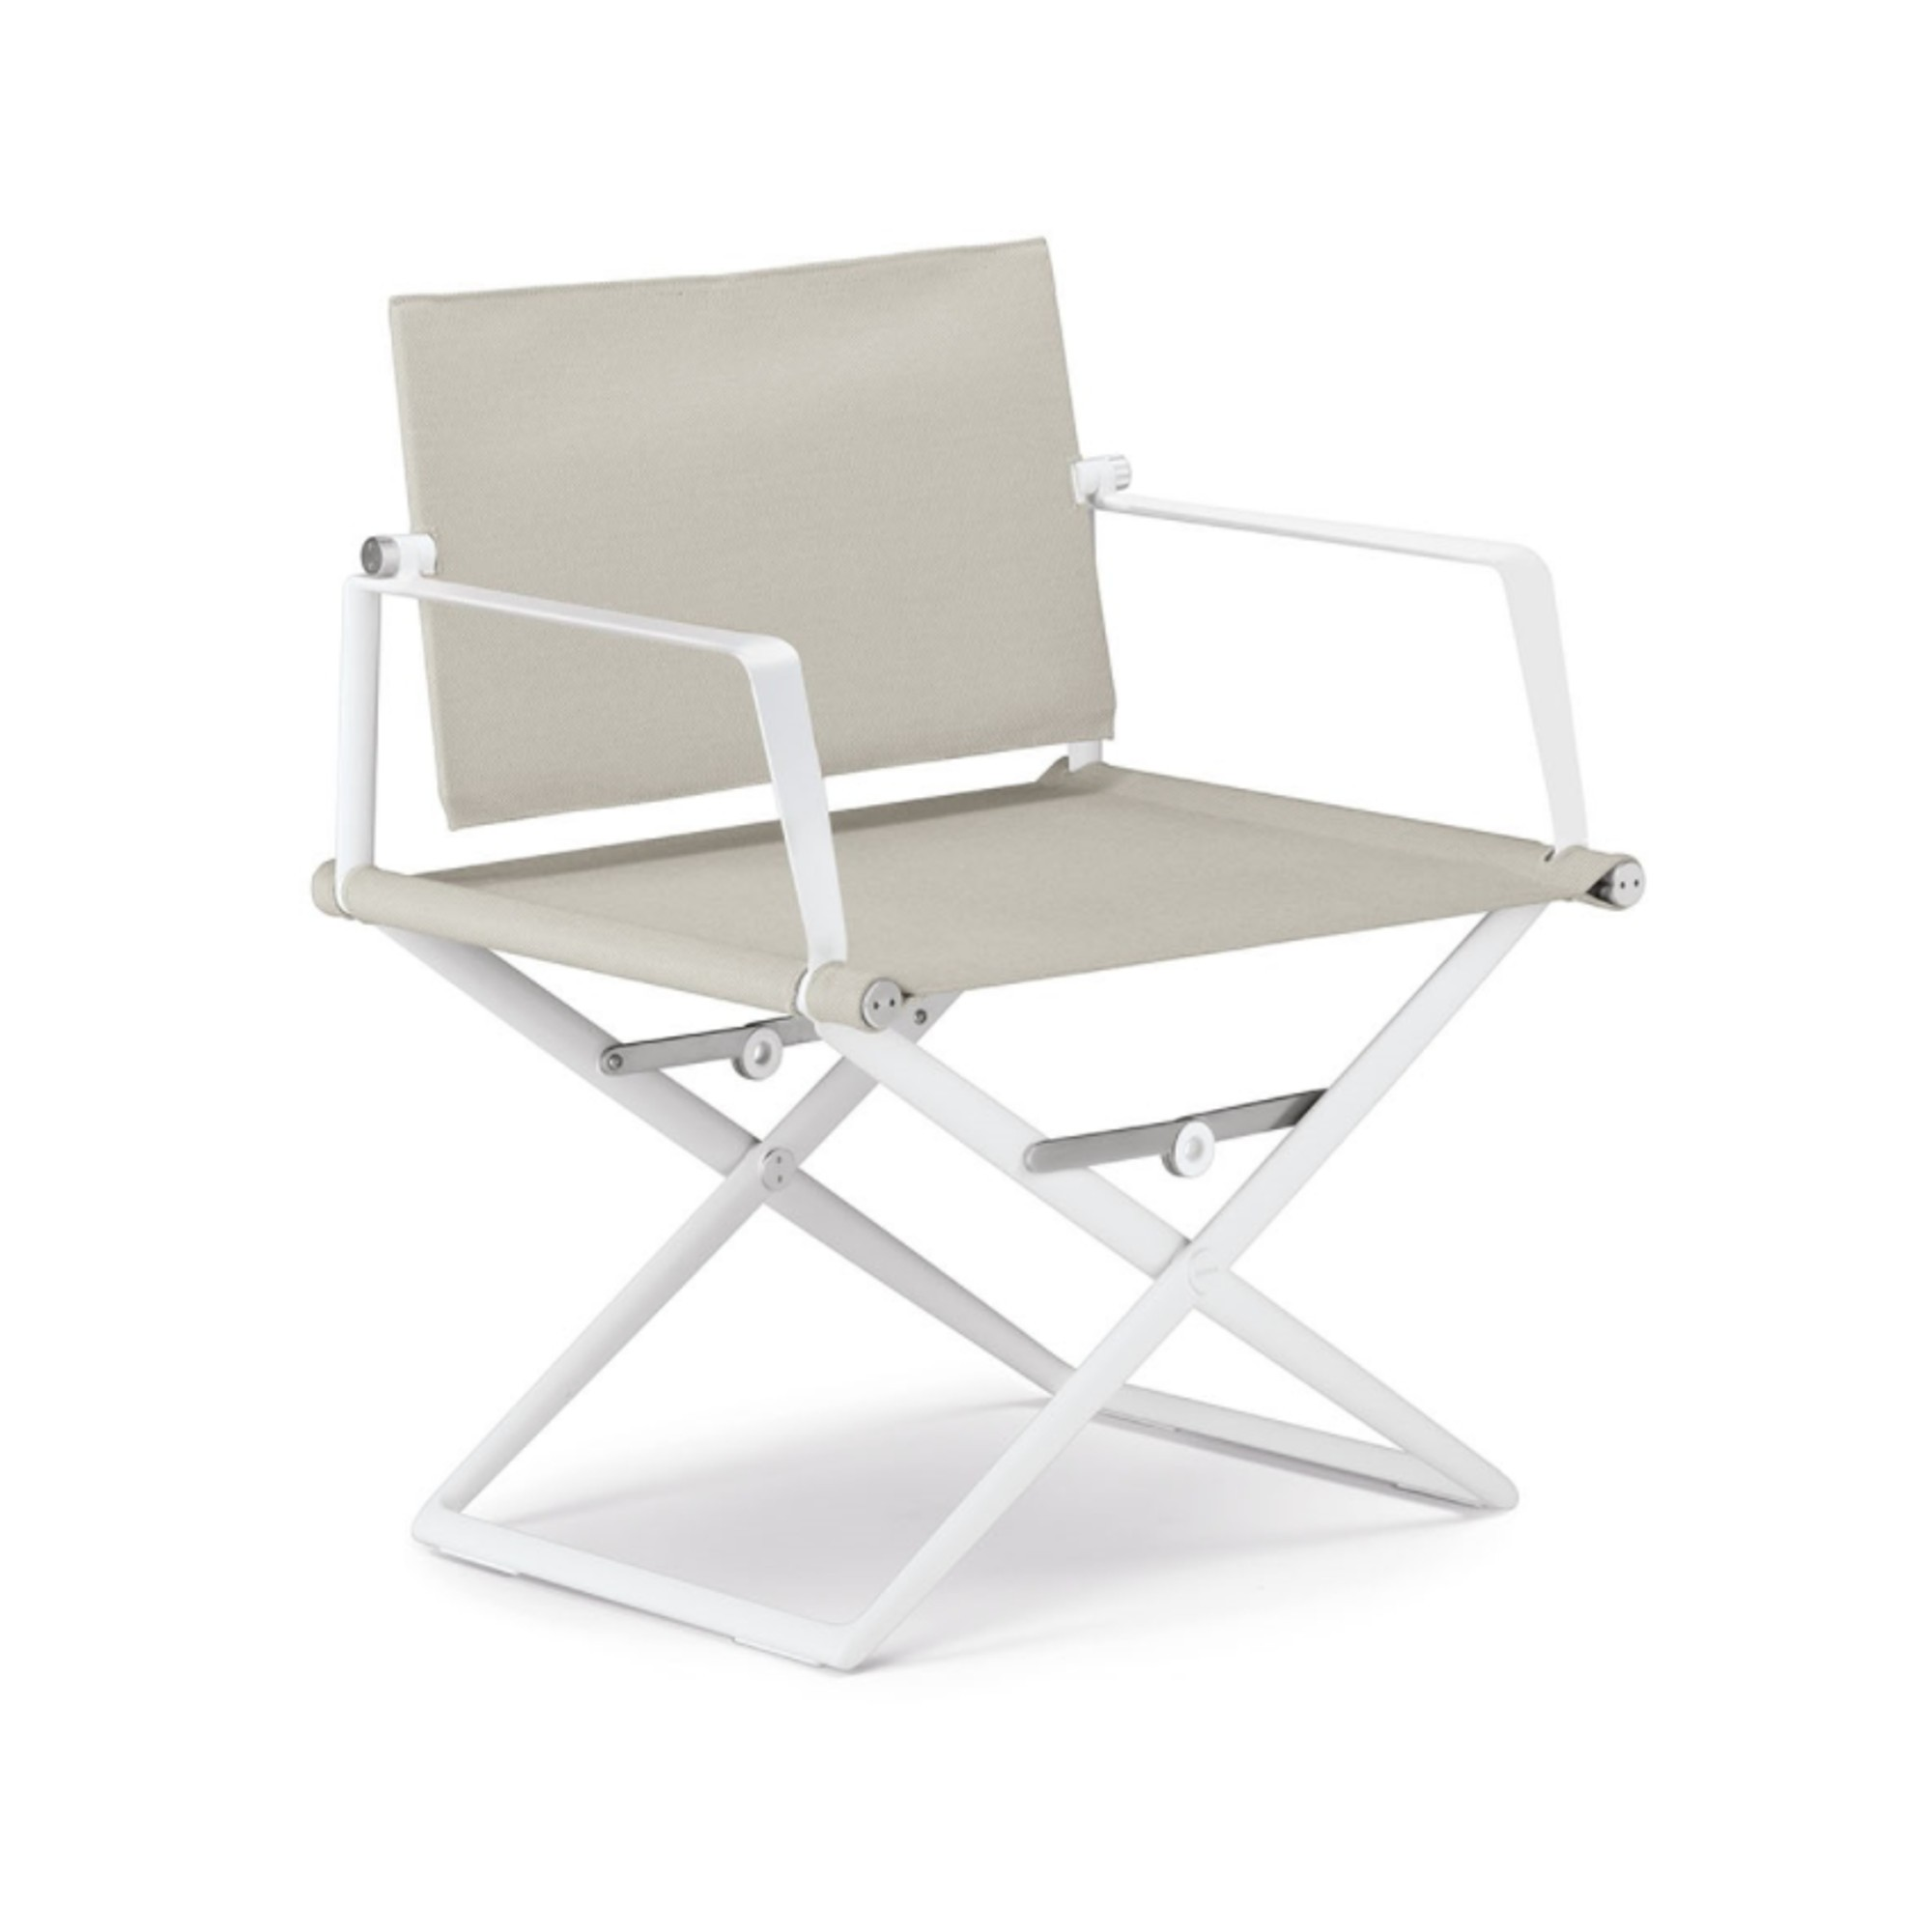 Seax Lounge Chair Armchairs Armchairs And Sofas